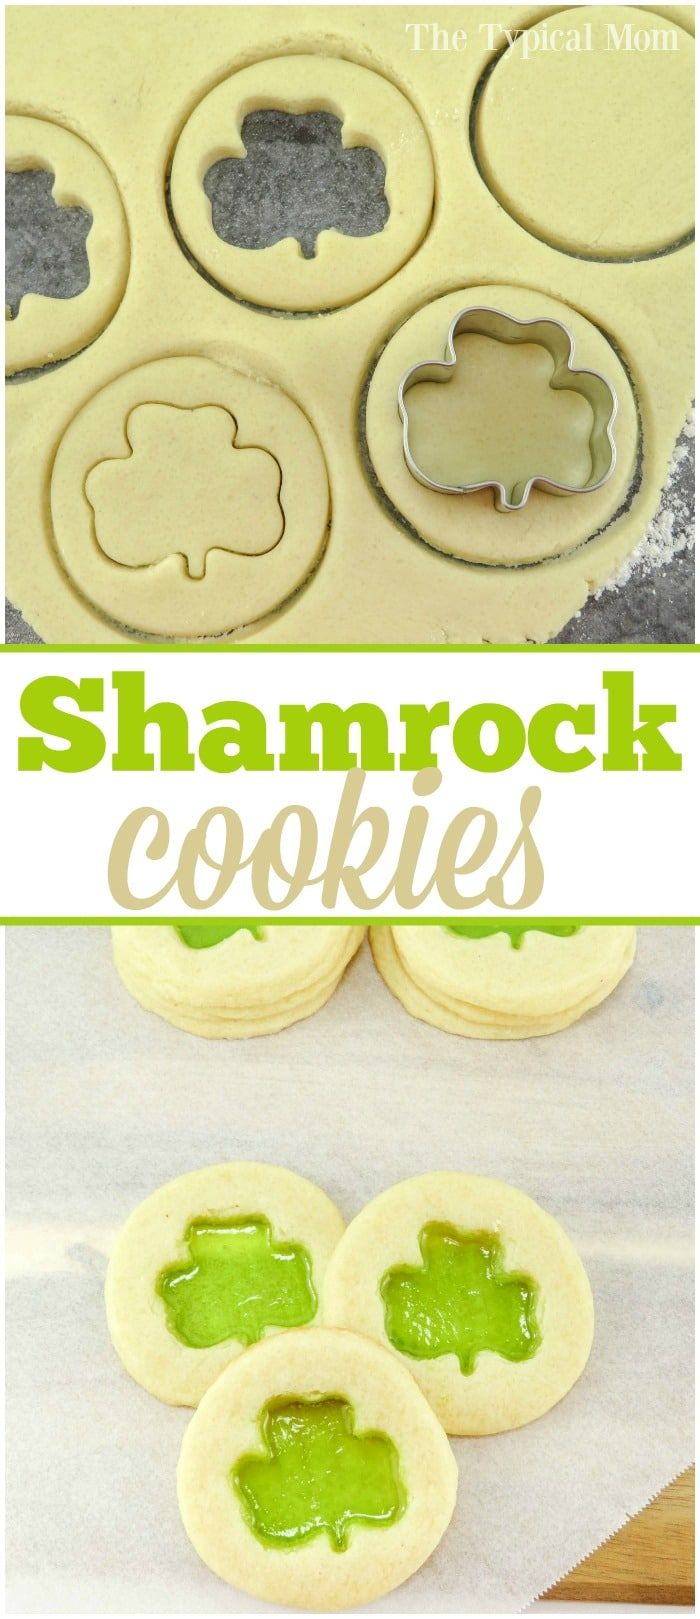 The cutest Shamrock cookies that are easy to make. Great St.Patrick's Day dessert to make with your kids that taste great and look really cute. via @thetypicalmom